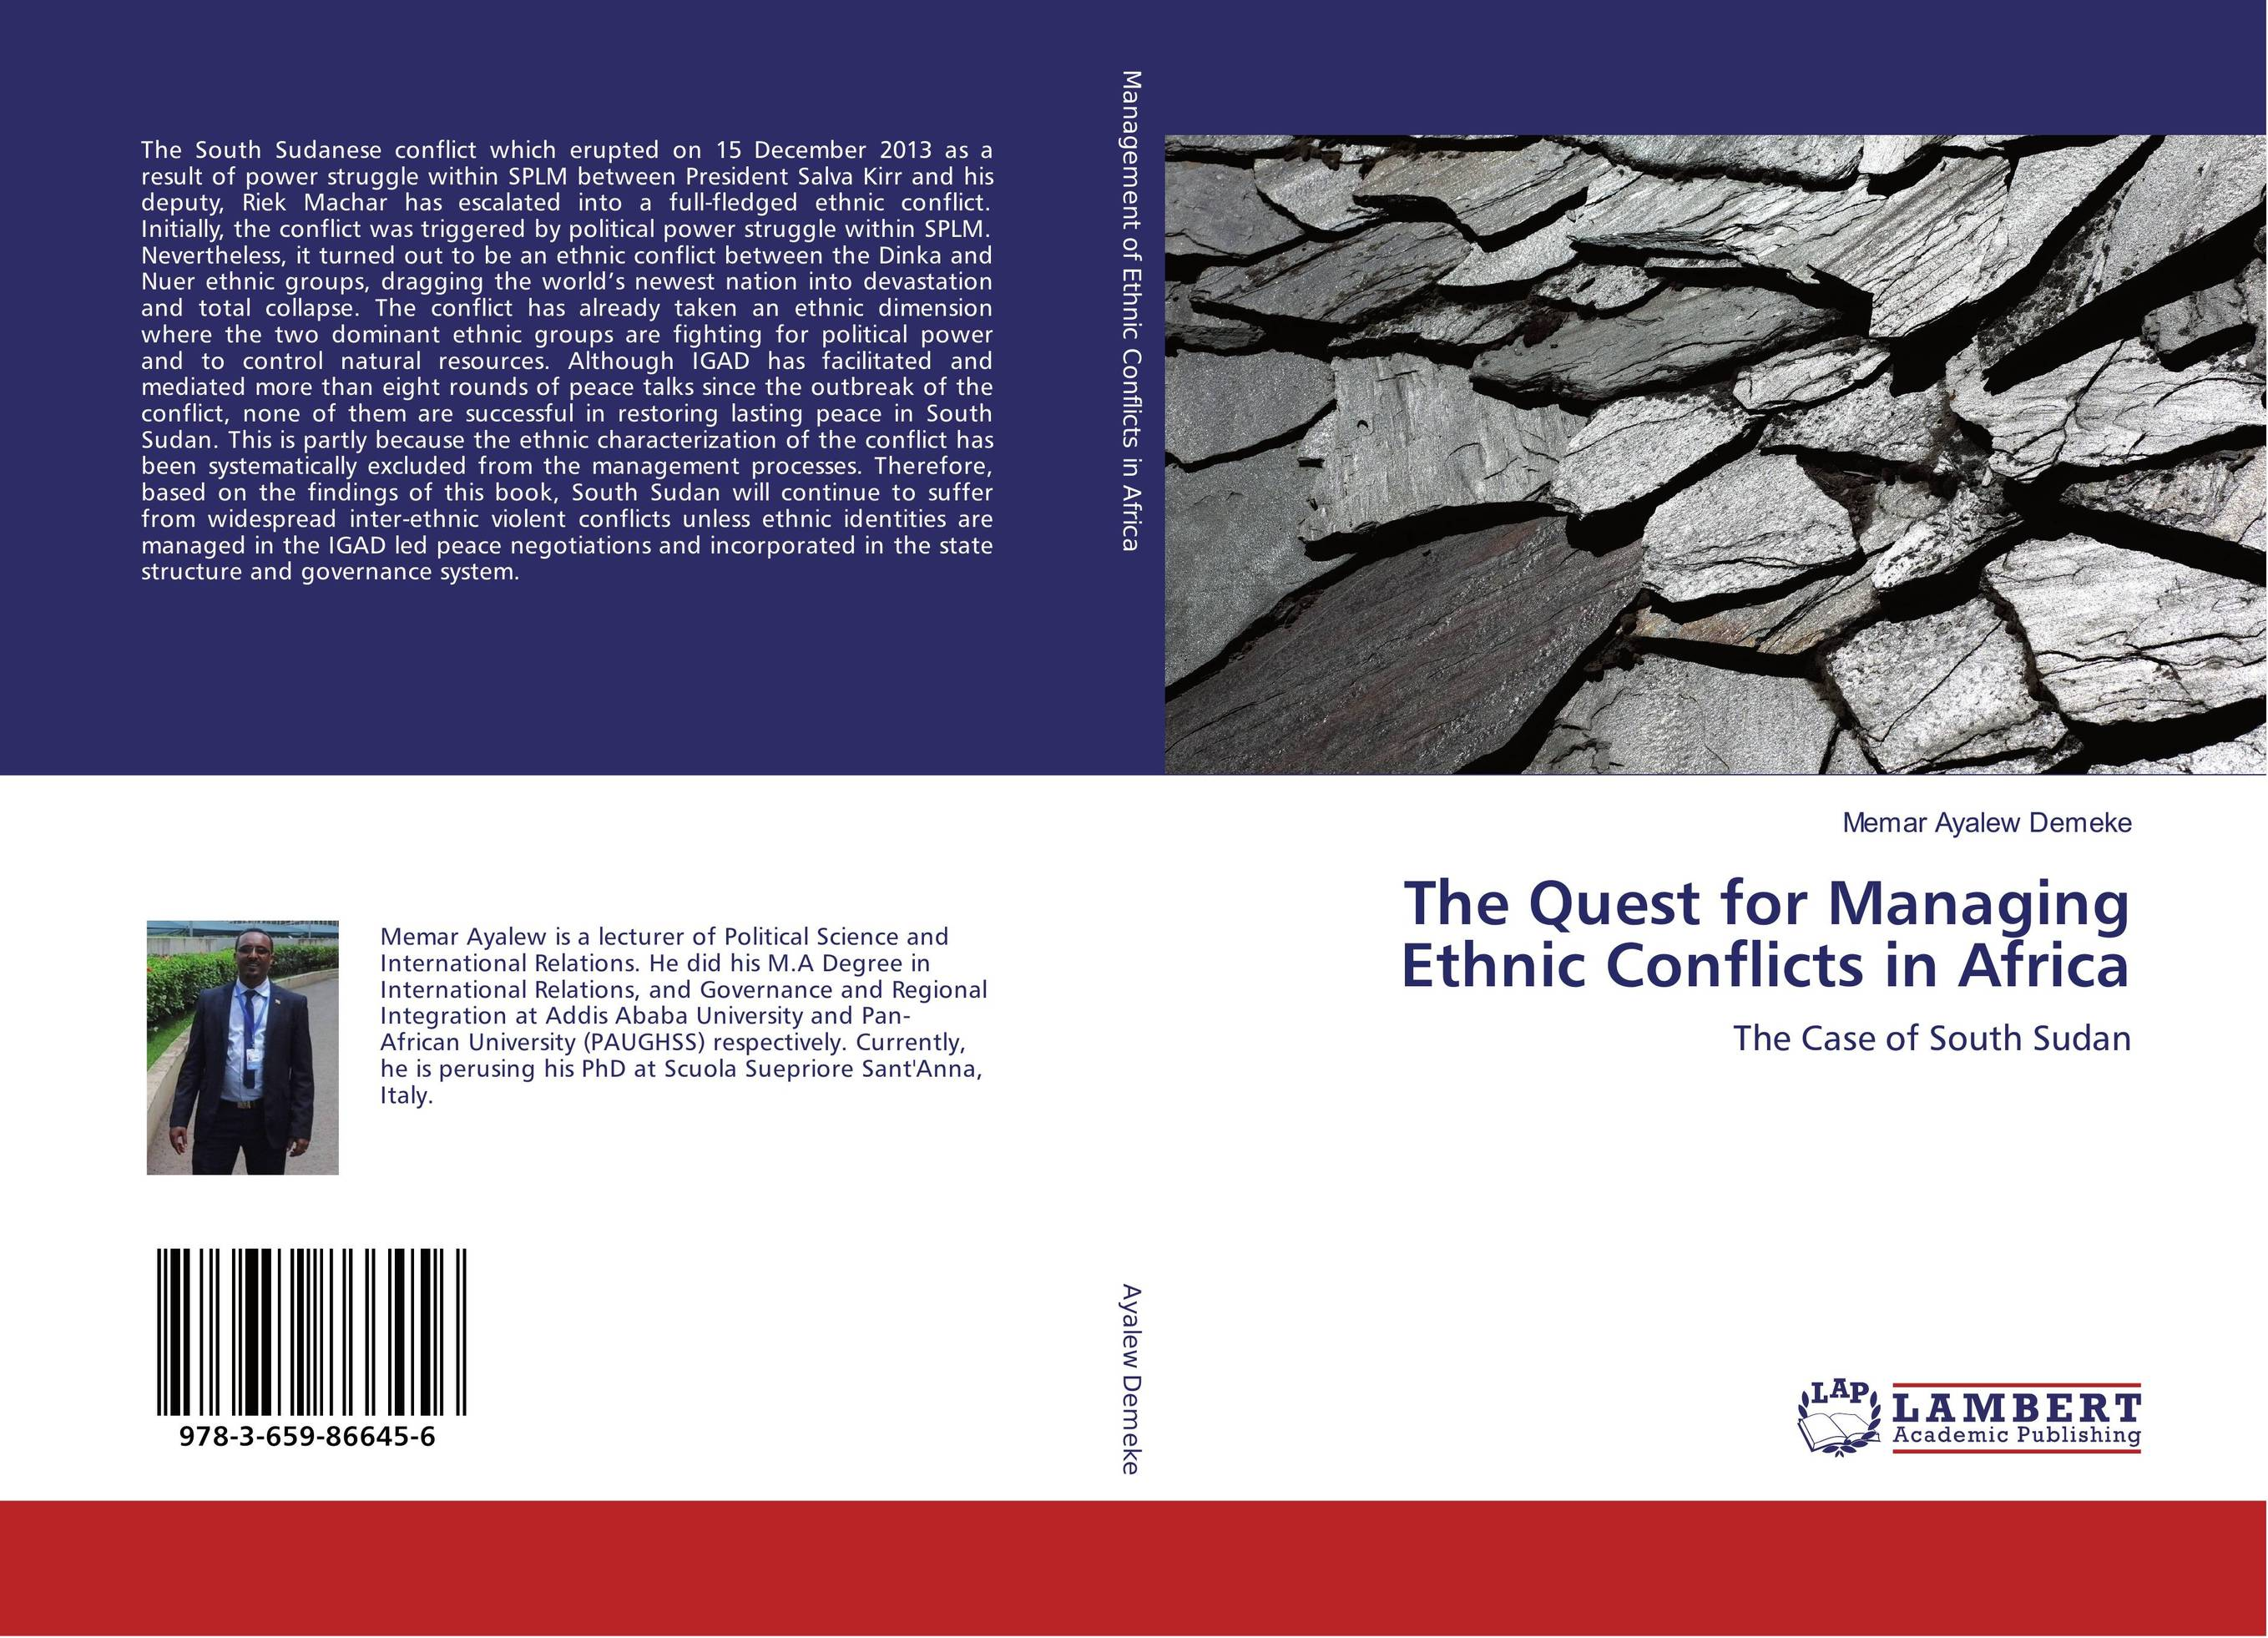 The Quest for Managing Ethnic Conflicts in Africa arcade ndoricimpa inflation output growth and their uncertainties in south africa empirical evidence from an asymmetric multivariate garch m model